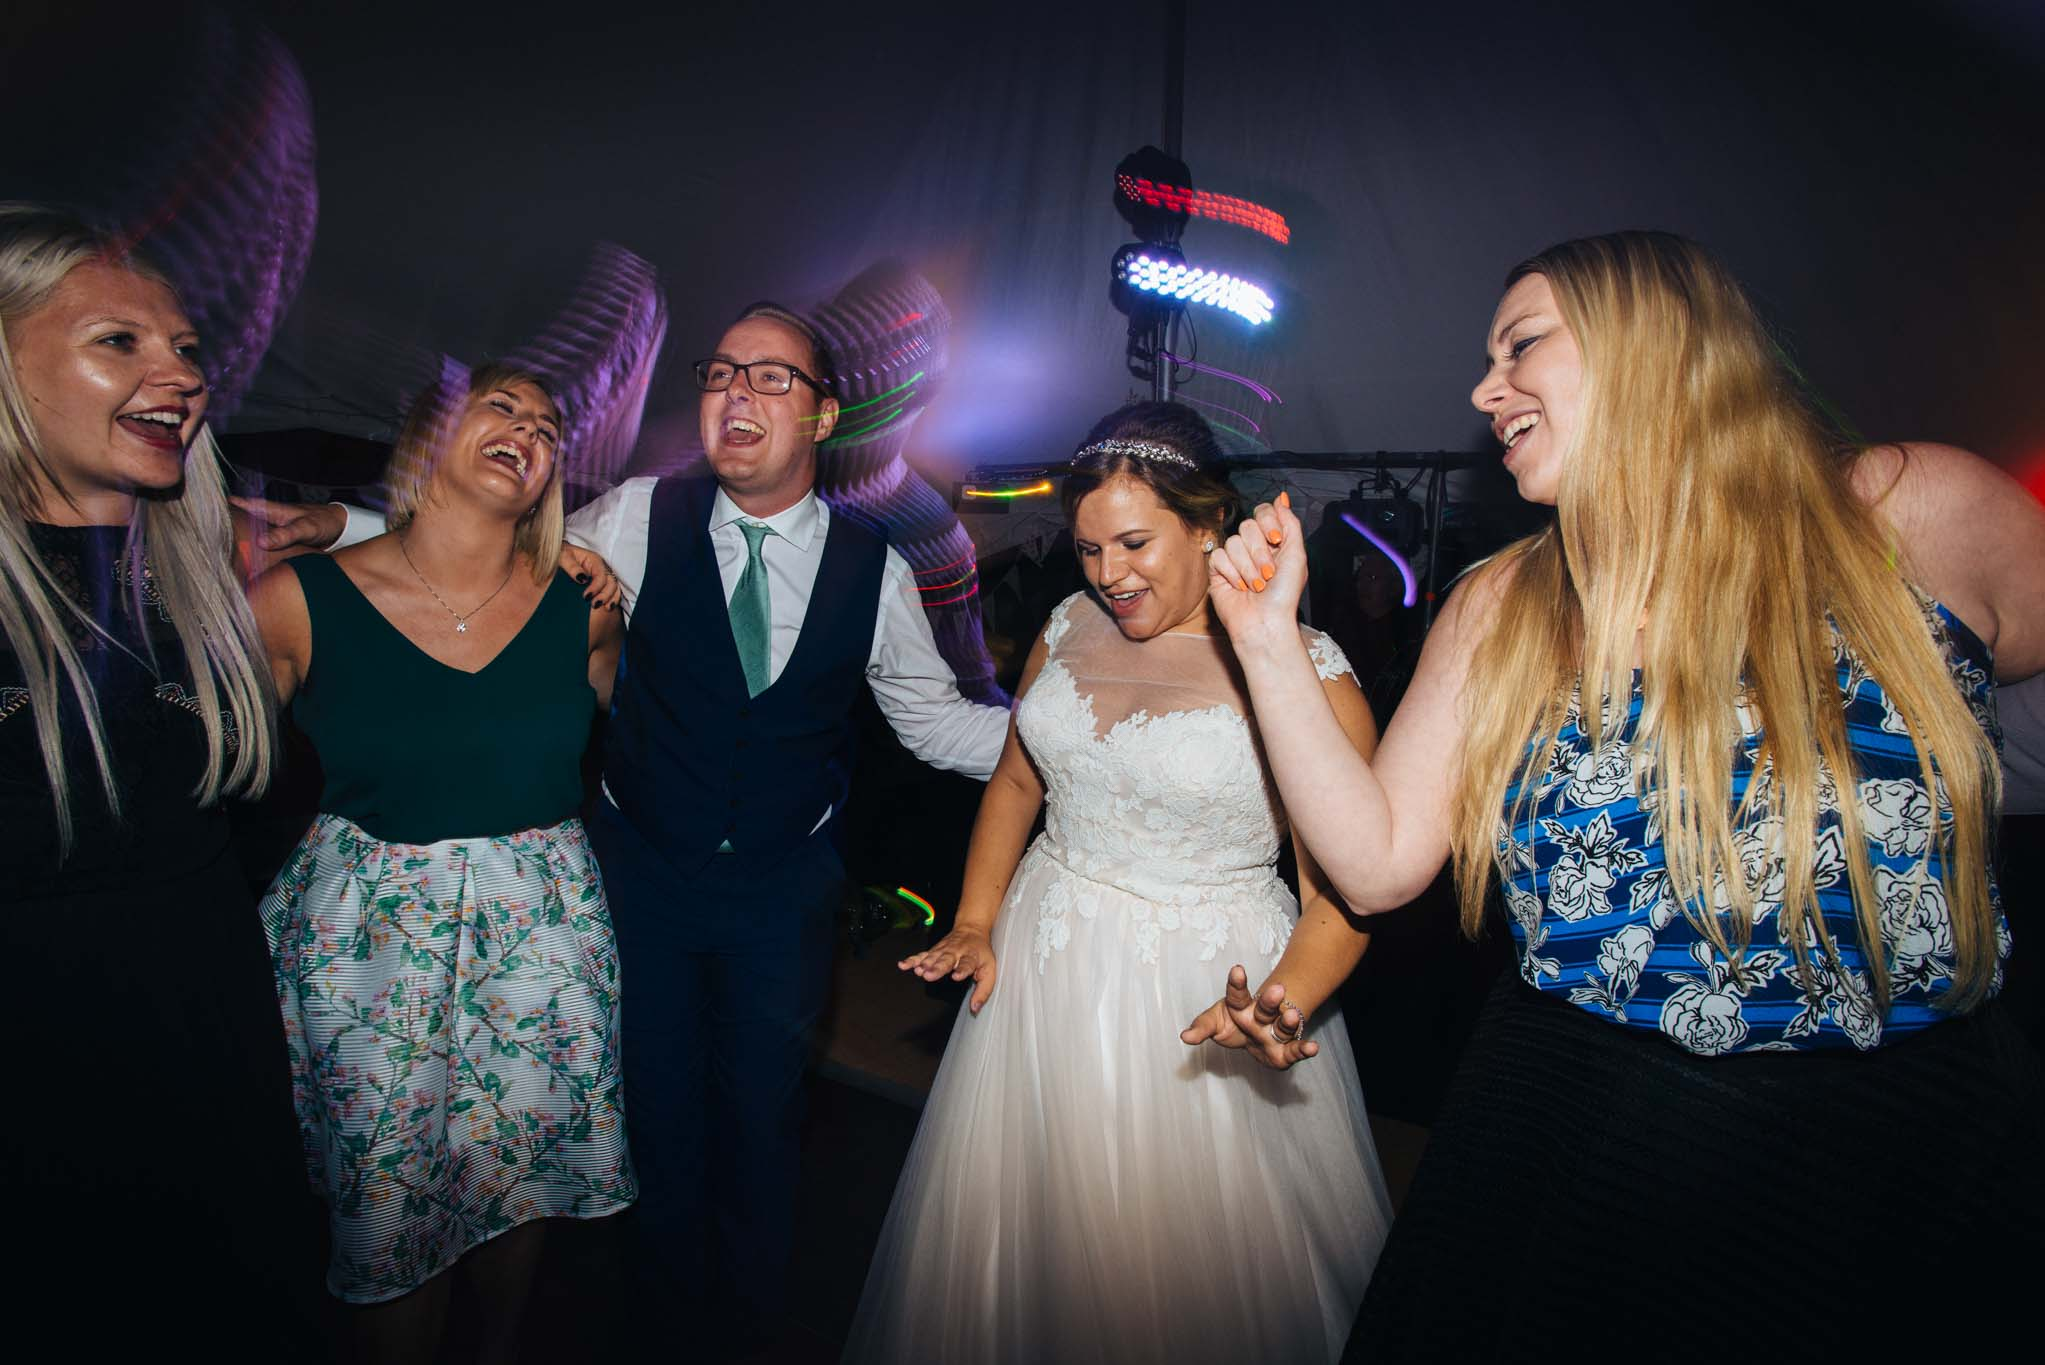 Low light wedding winter wedding sussex wedding photographer00003